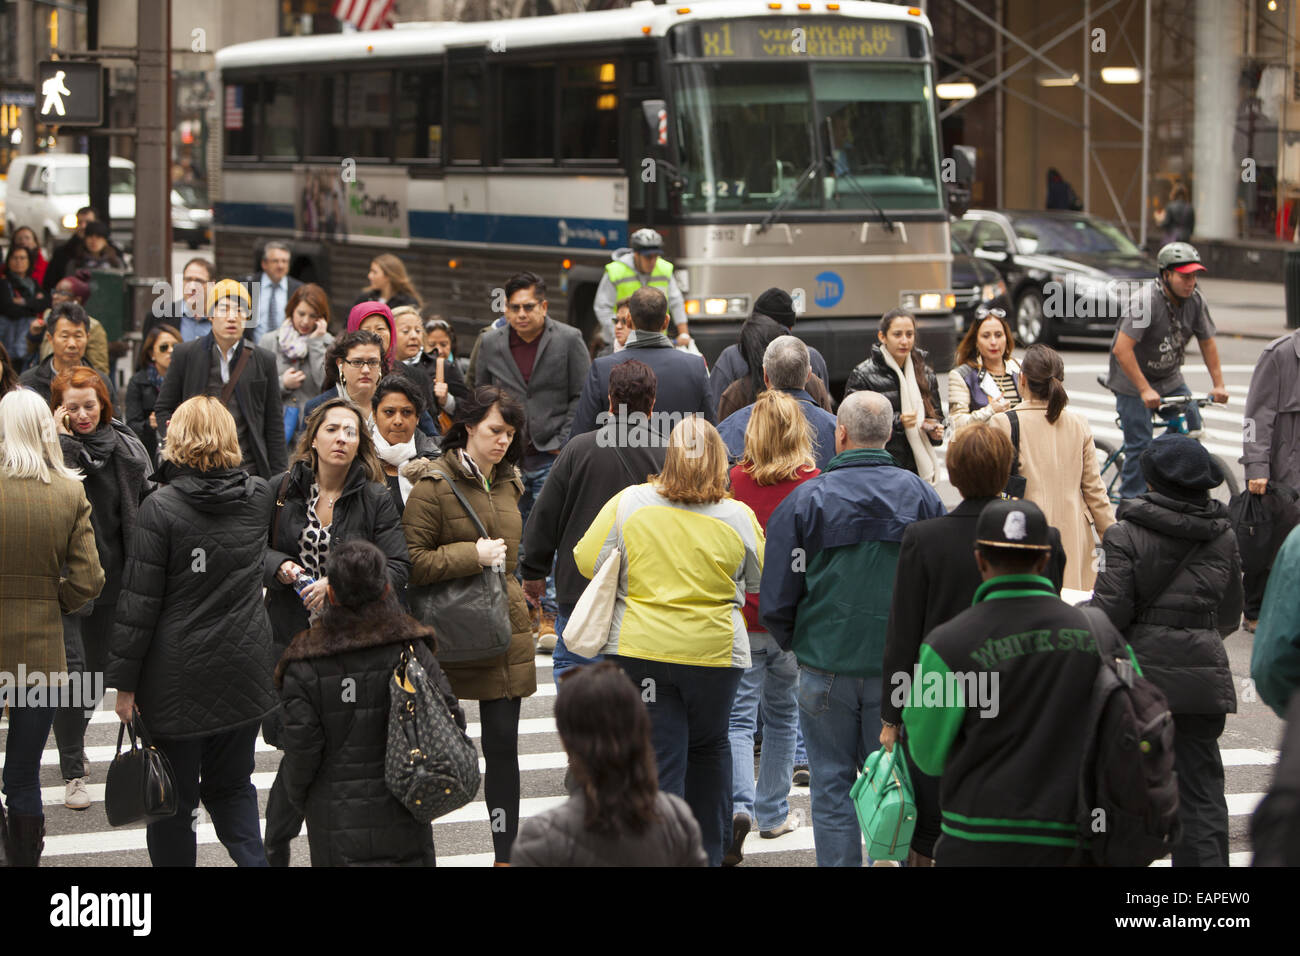 5th Ave. at 42nd Street is one of the most constantly crowded corners in New York City. - Stock Image